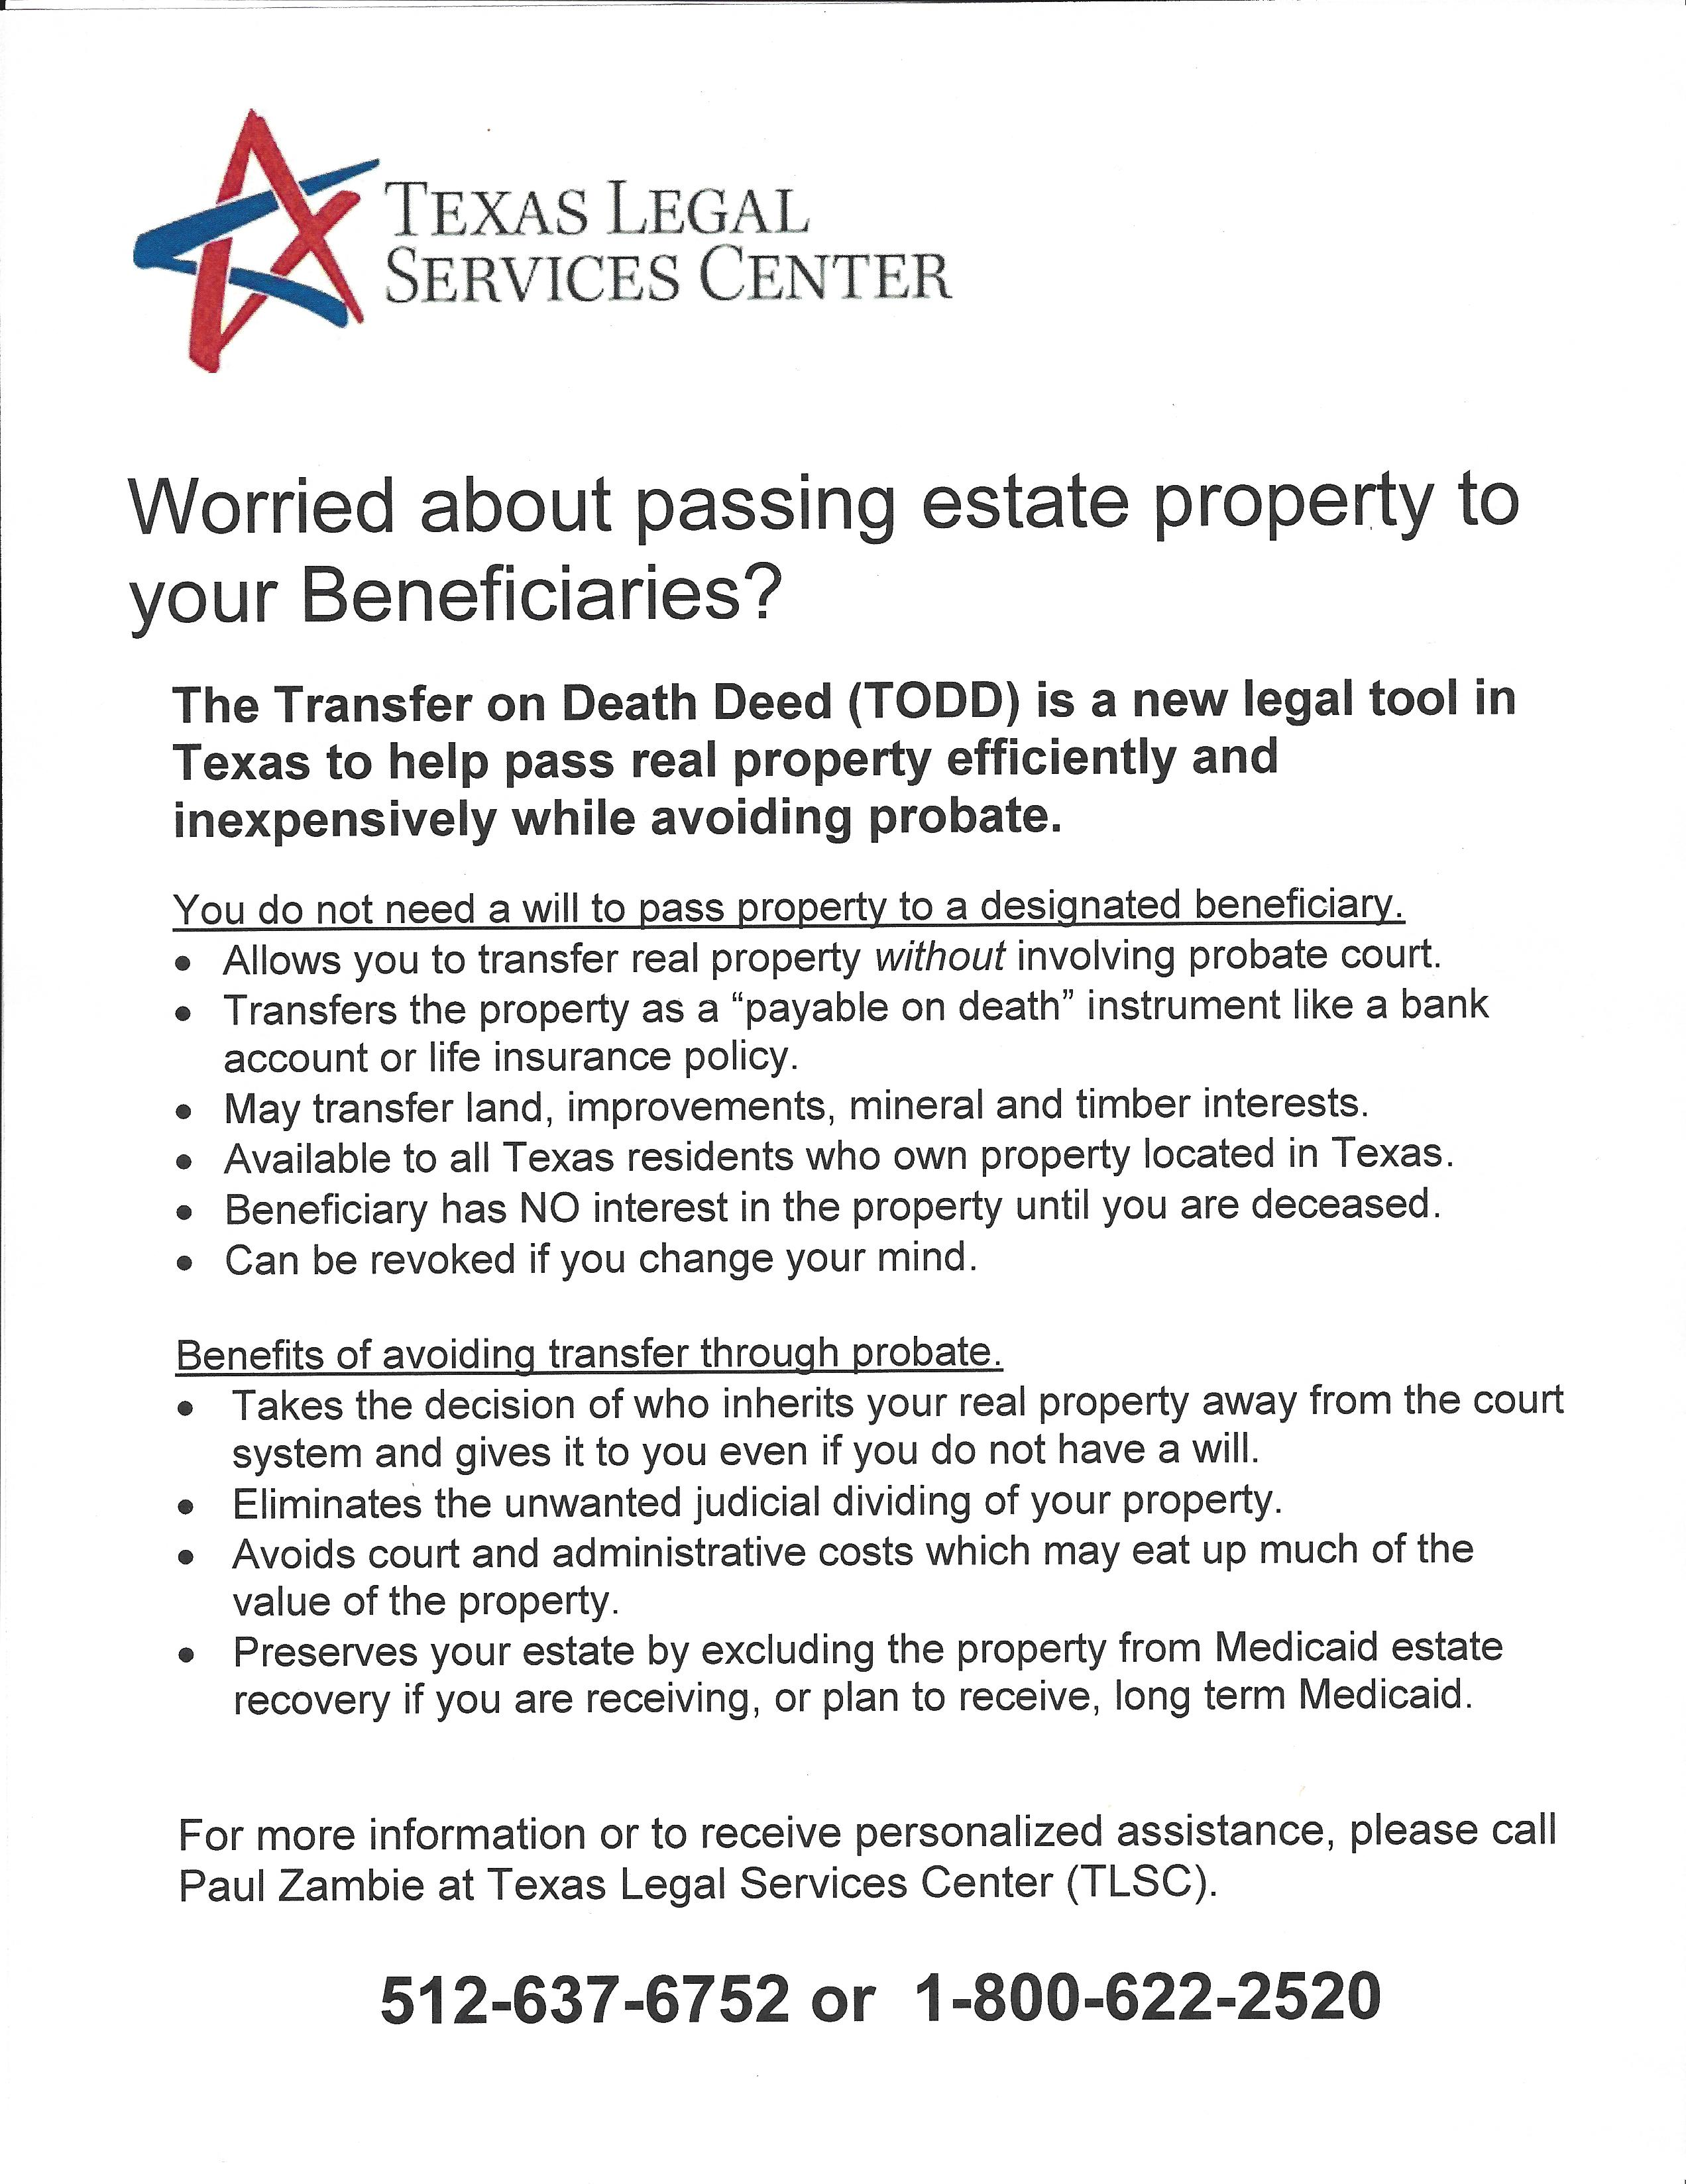 Worried About Passing Estate Property to Your Beneficiaries? Learn ...